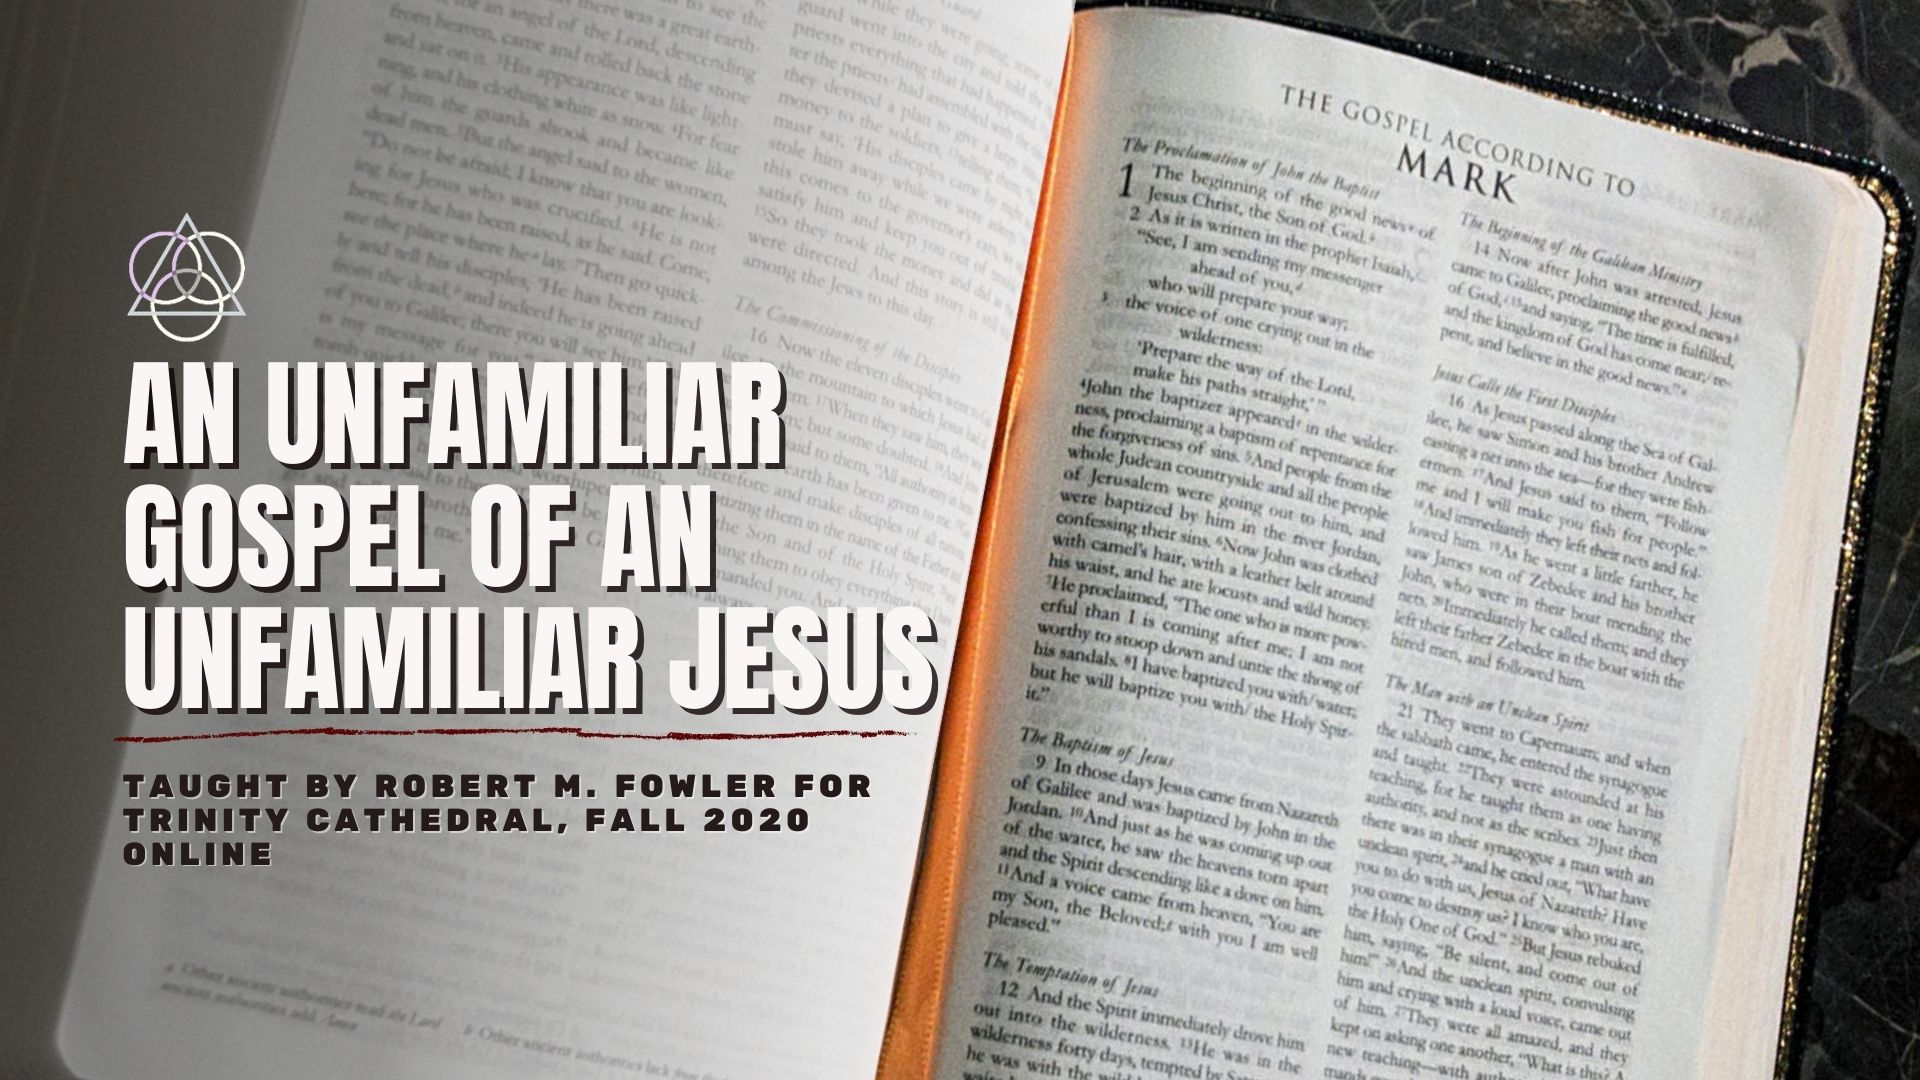 The Gospel of Mark: An Unfamiliar Gospel of an Unfamiliar Jesus